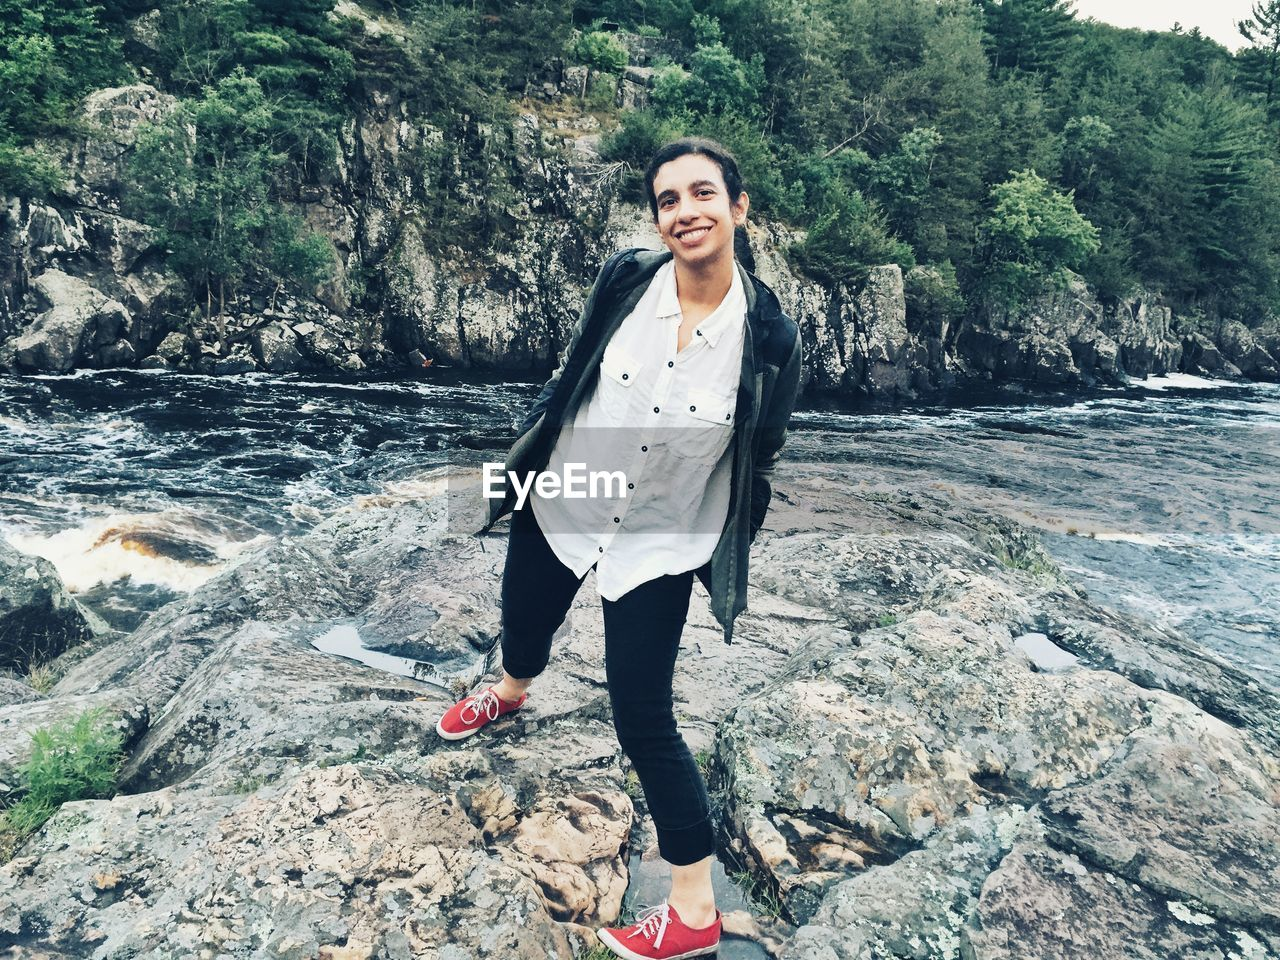 Portrait of smiling young woman standing on rock formation against river